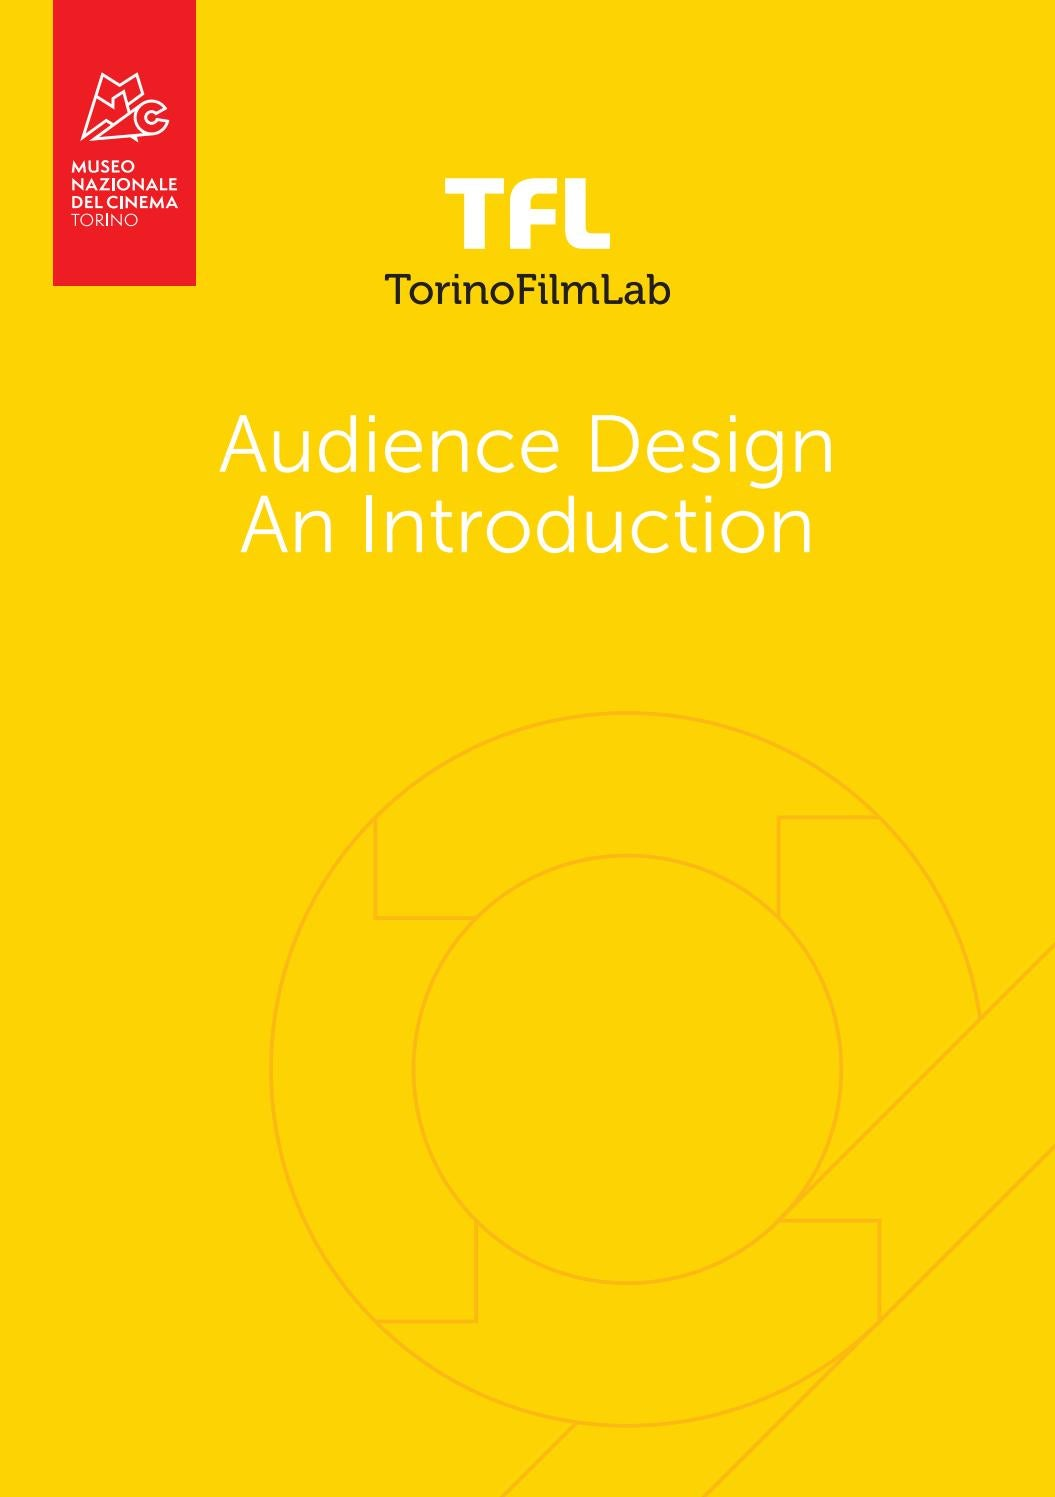 TFL Audience Design - An Introduction by TorinoFilmLab - issuu